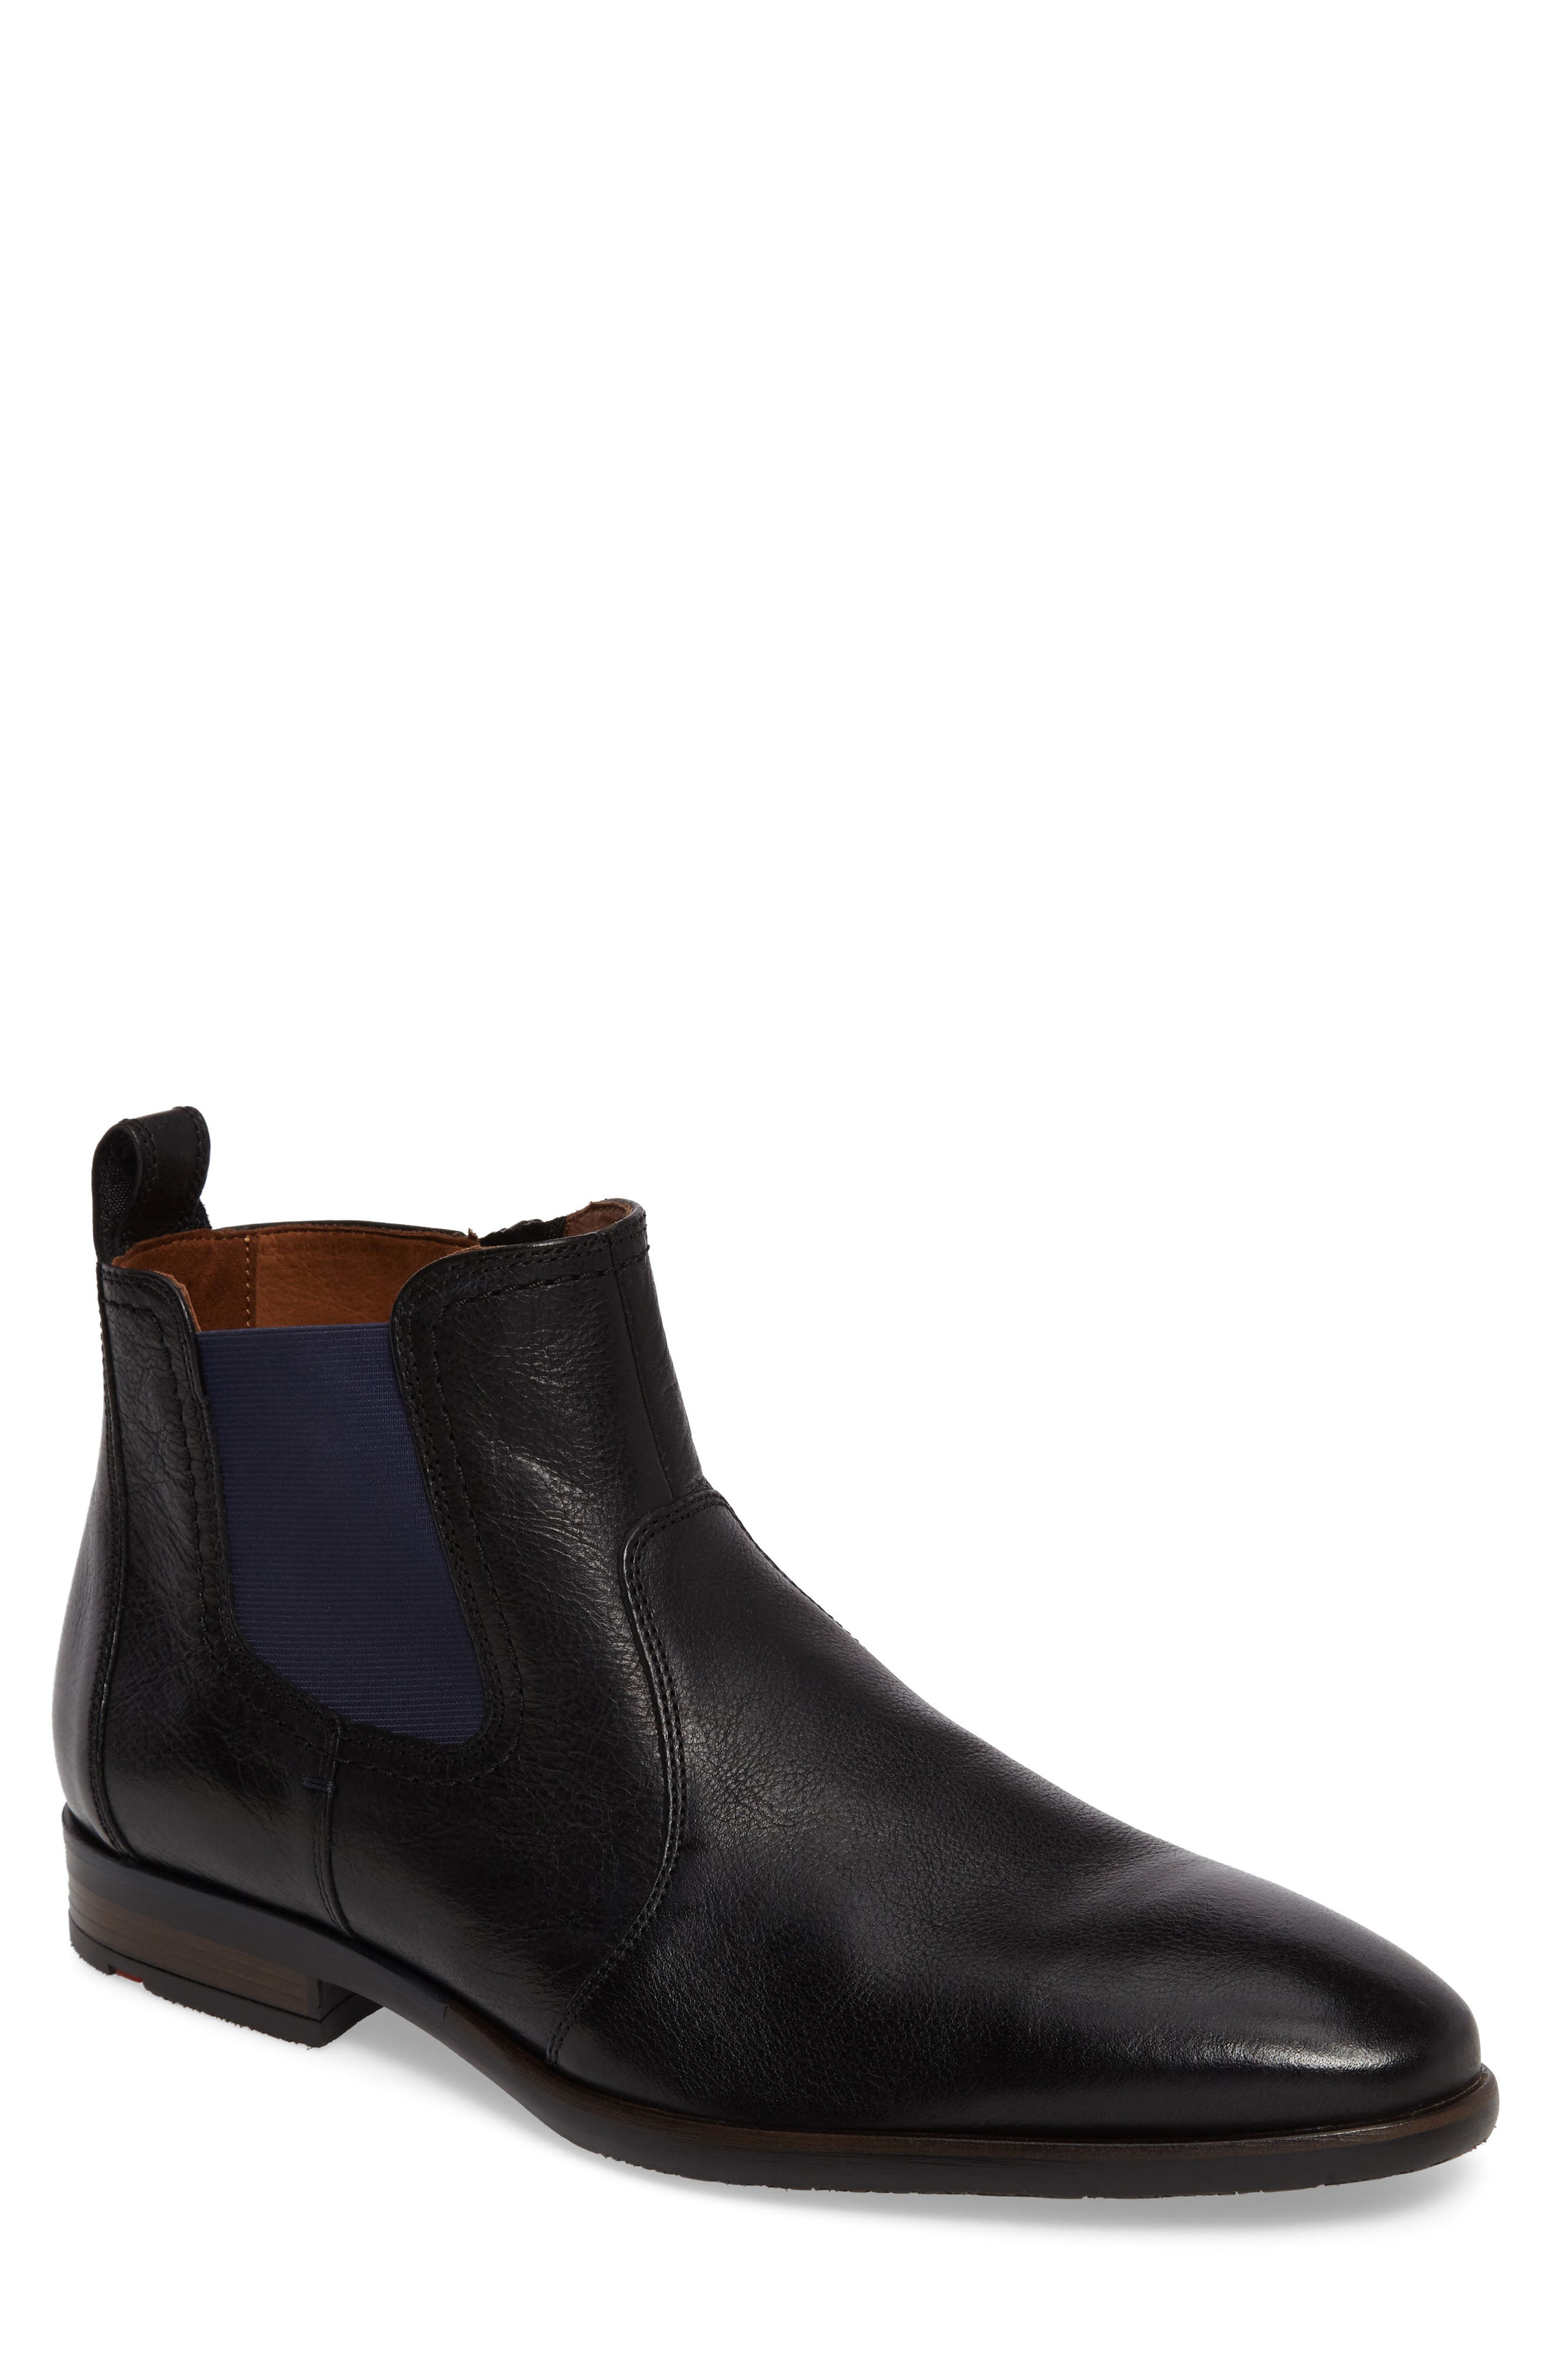 Dylan Chelsea Boot,                         Main,                         color,